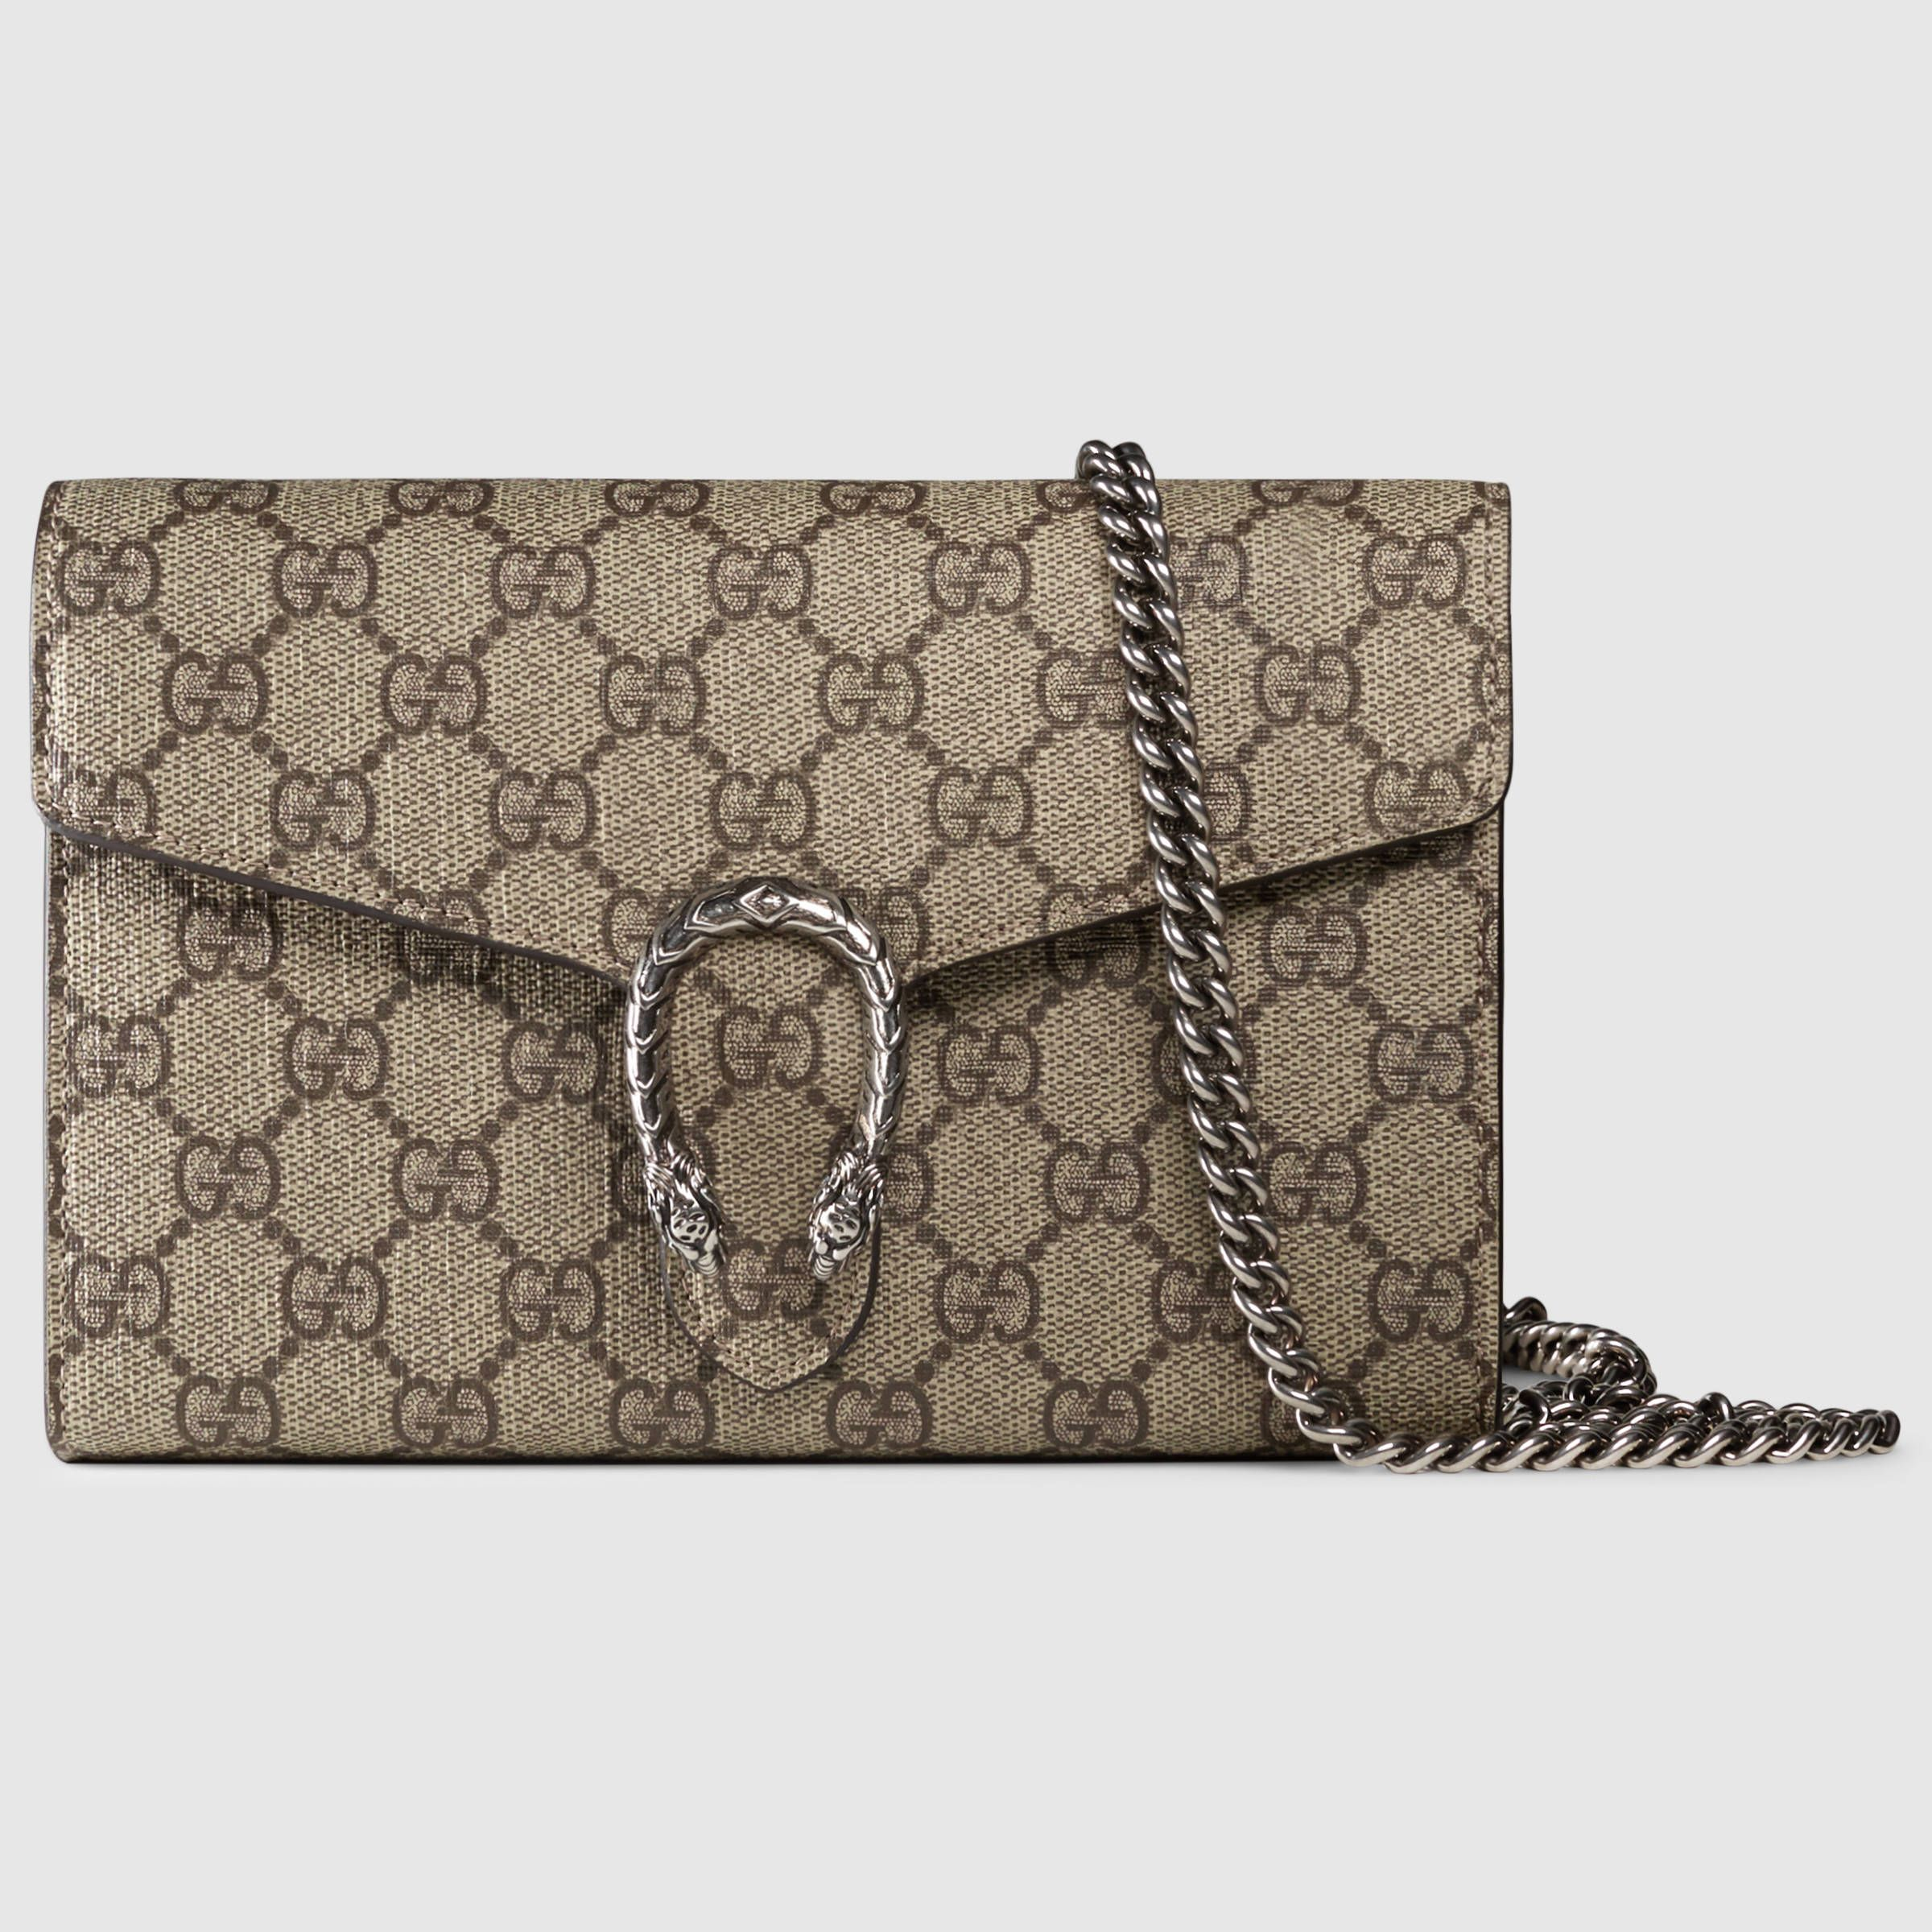 655106b00f4 Dionysus GG Supreme chain wallet in 2019